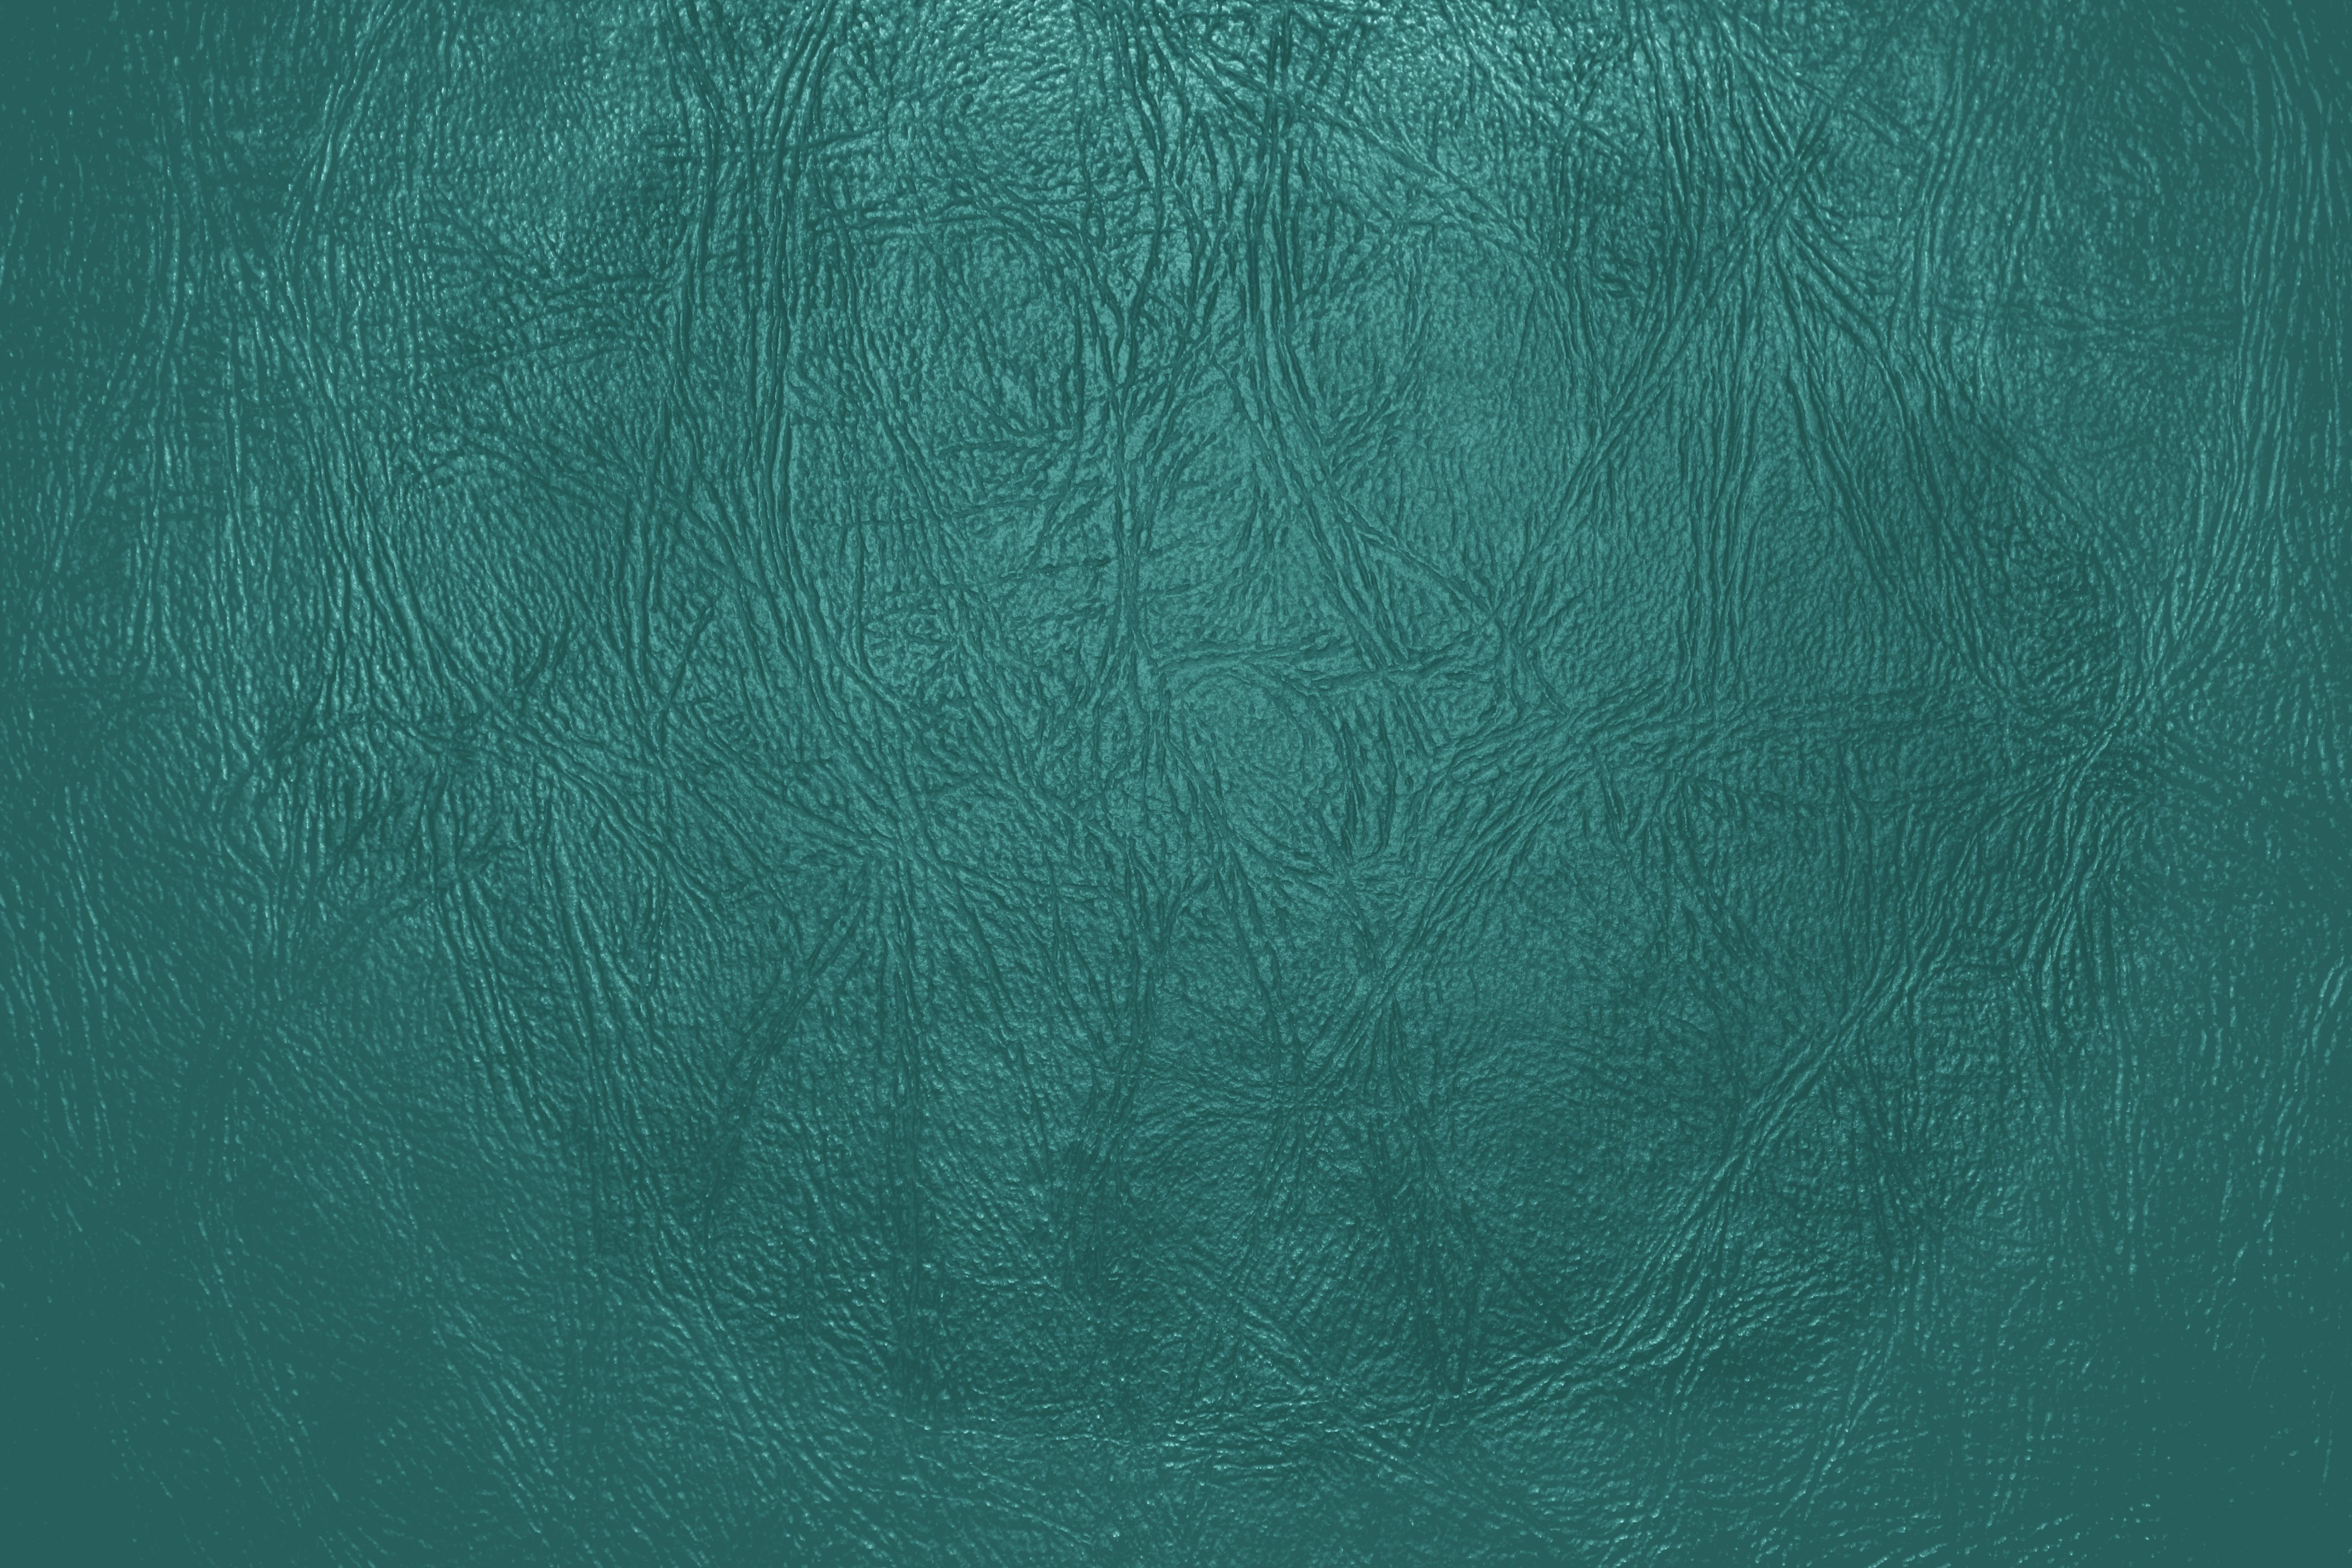 Teal Leather Close Up Texture Picture Photograph Photos 3888x2592